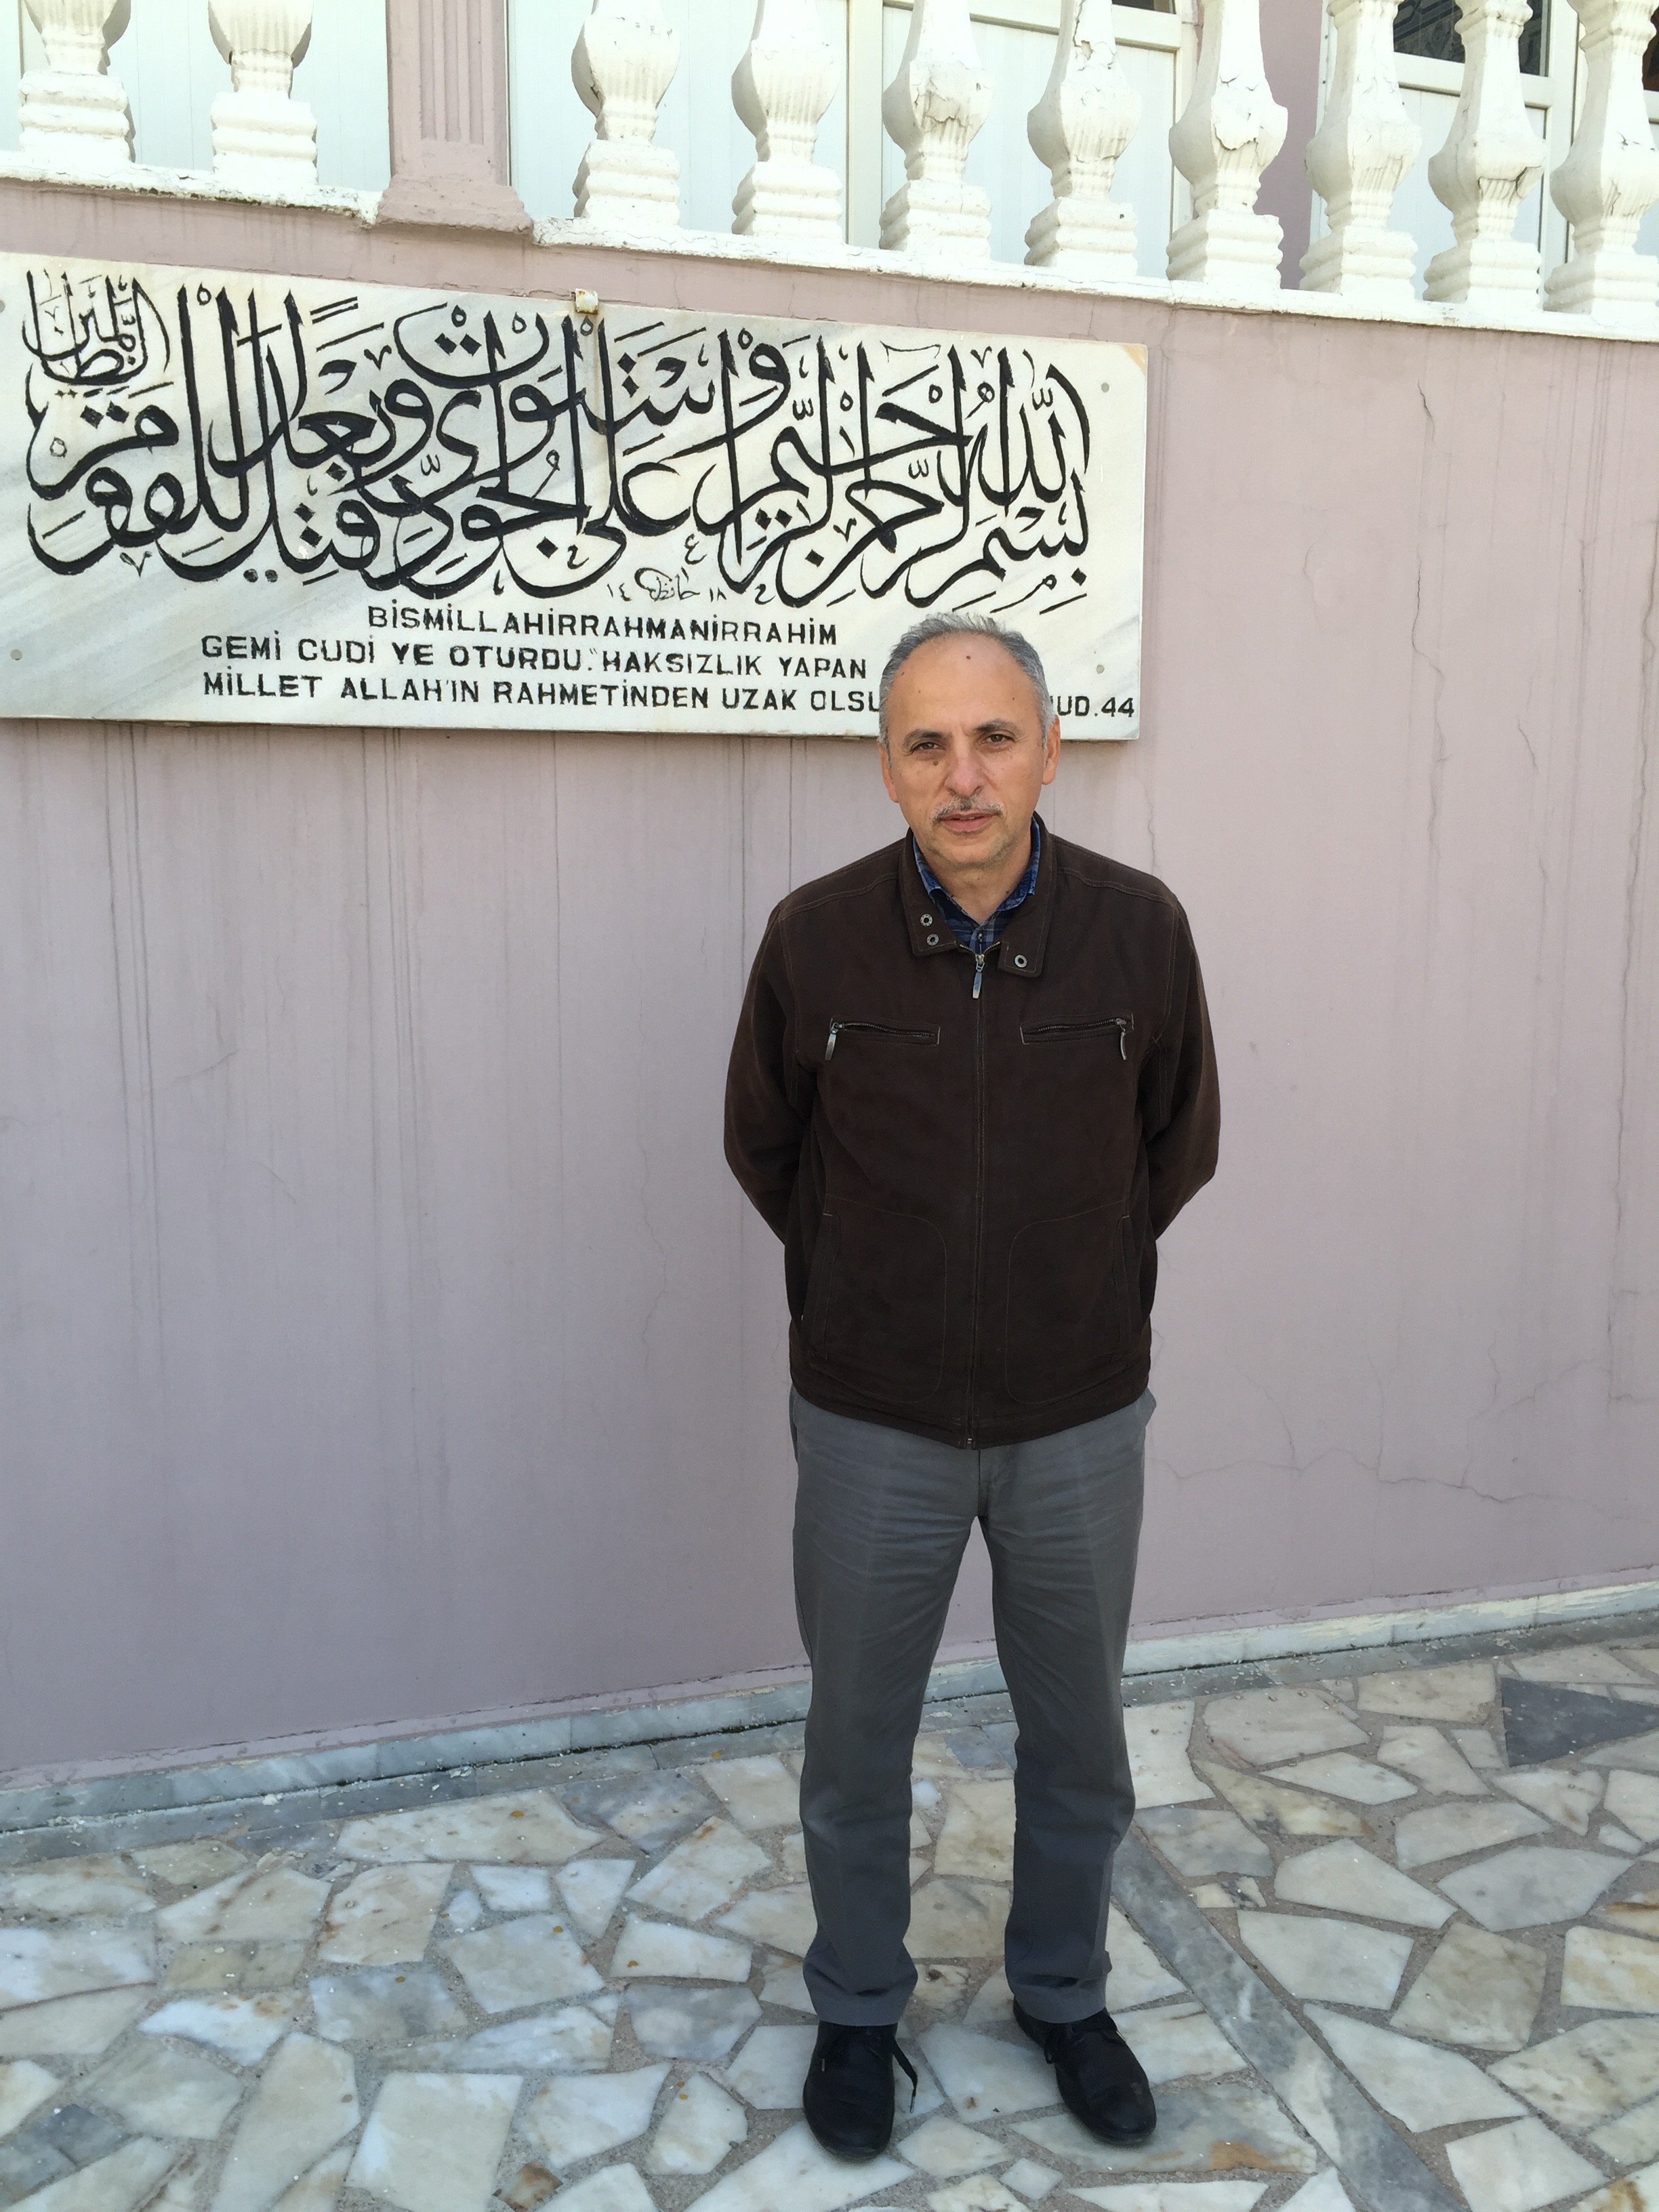 Diary Of A Fact Finding Mission In Cizre